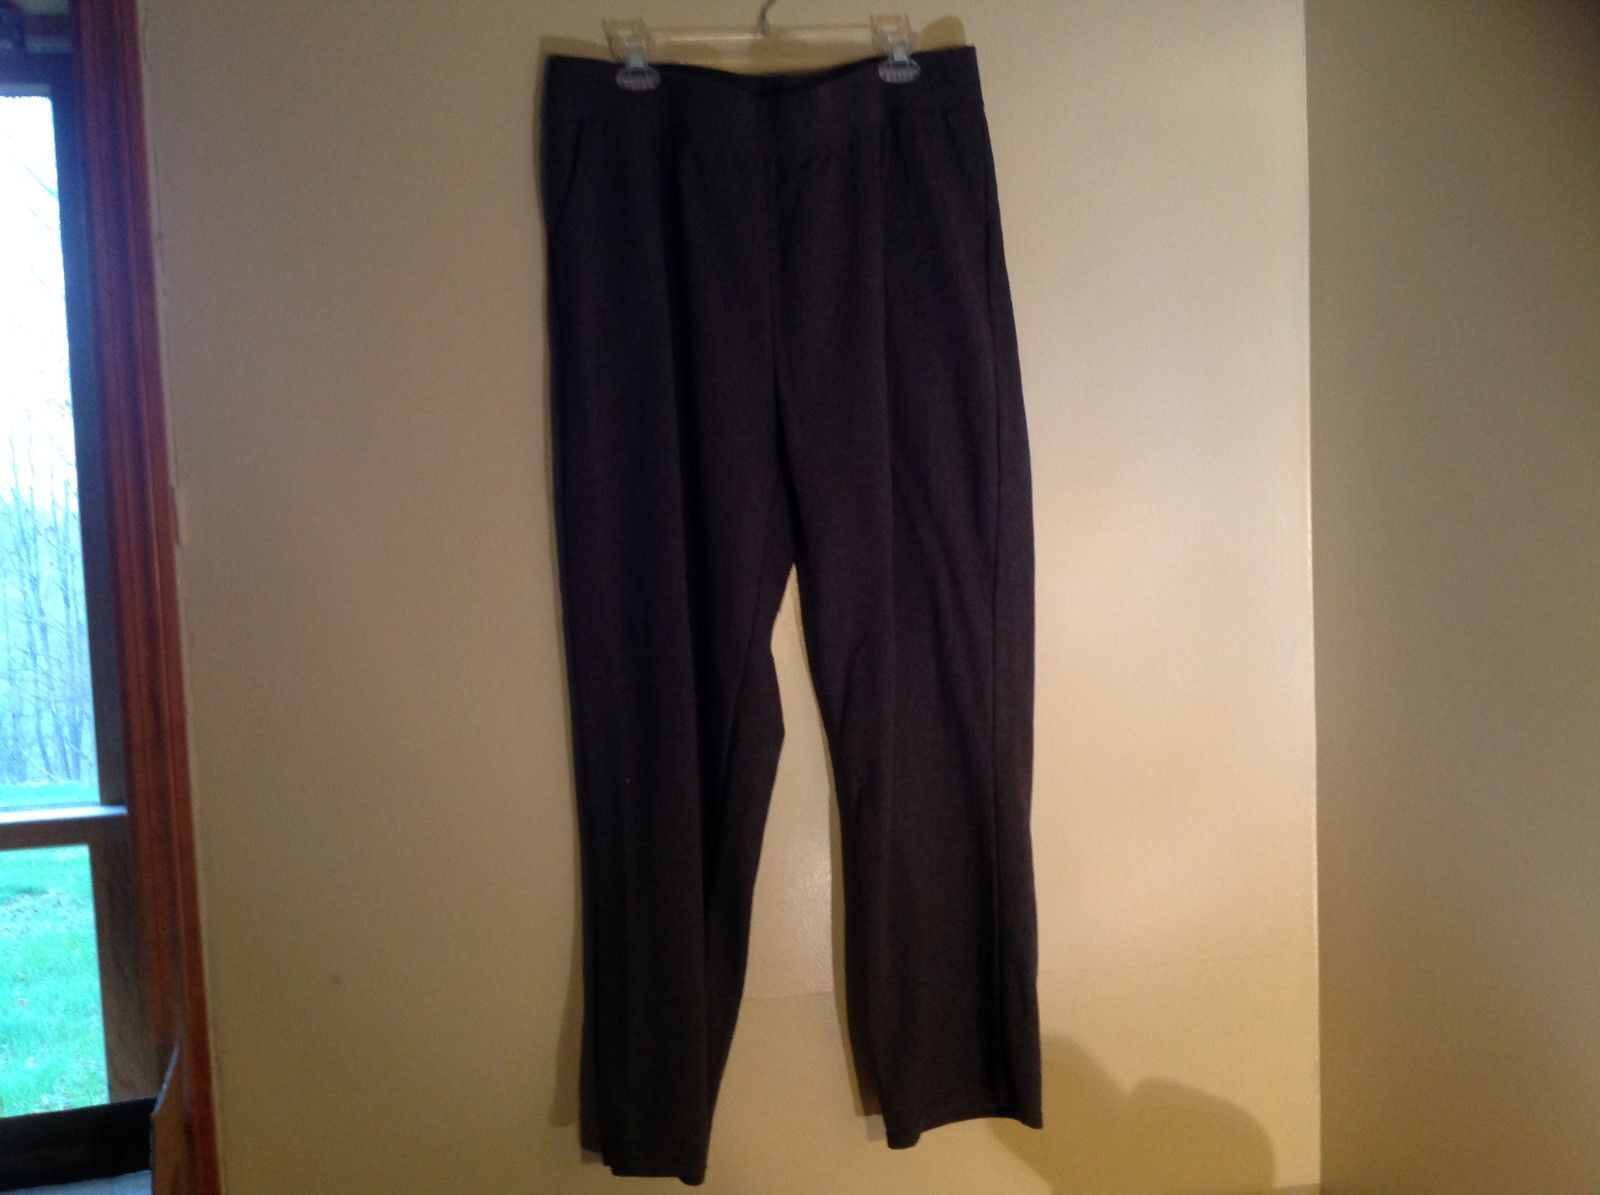 Just My Size Dark Gray Sweatpants with Two Pockets Elastic Waistband Size 2X